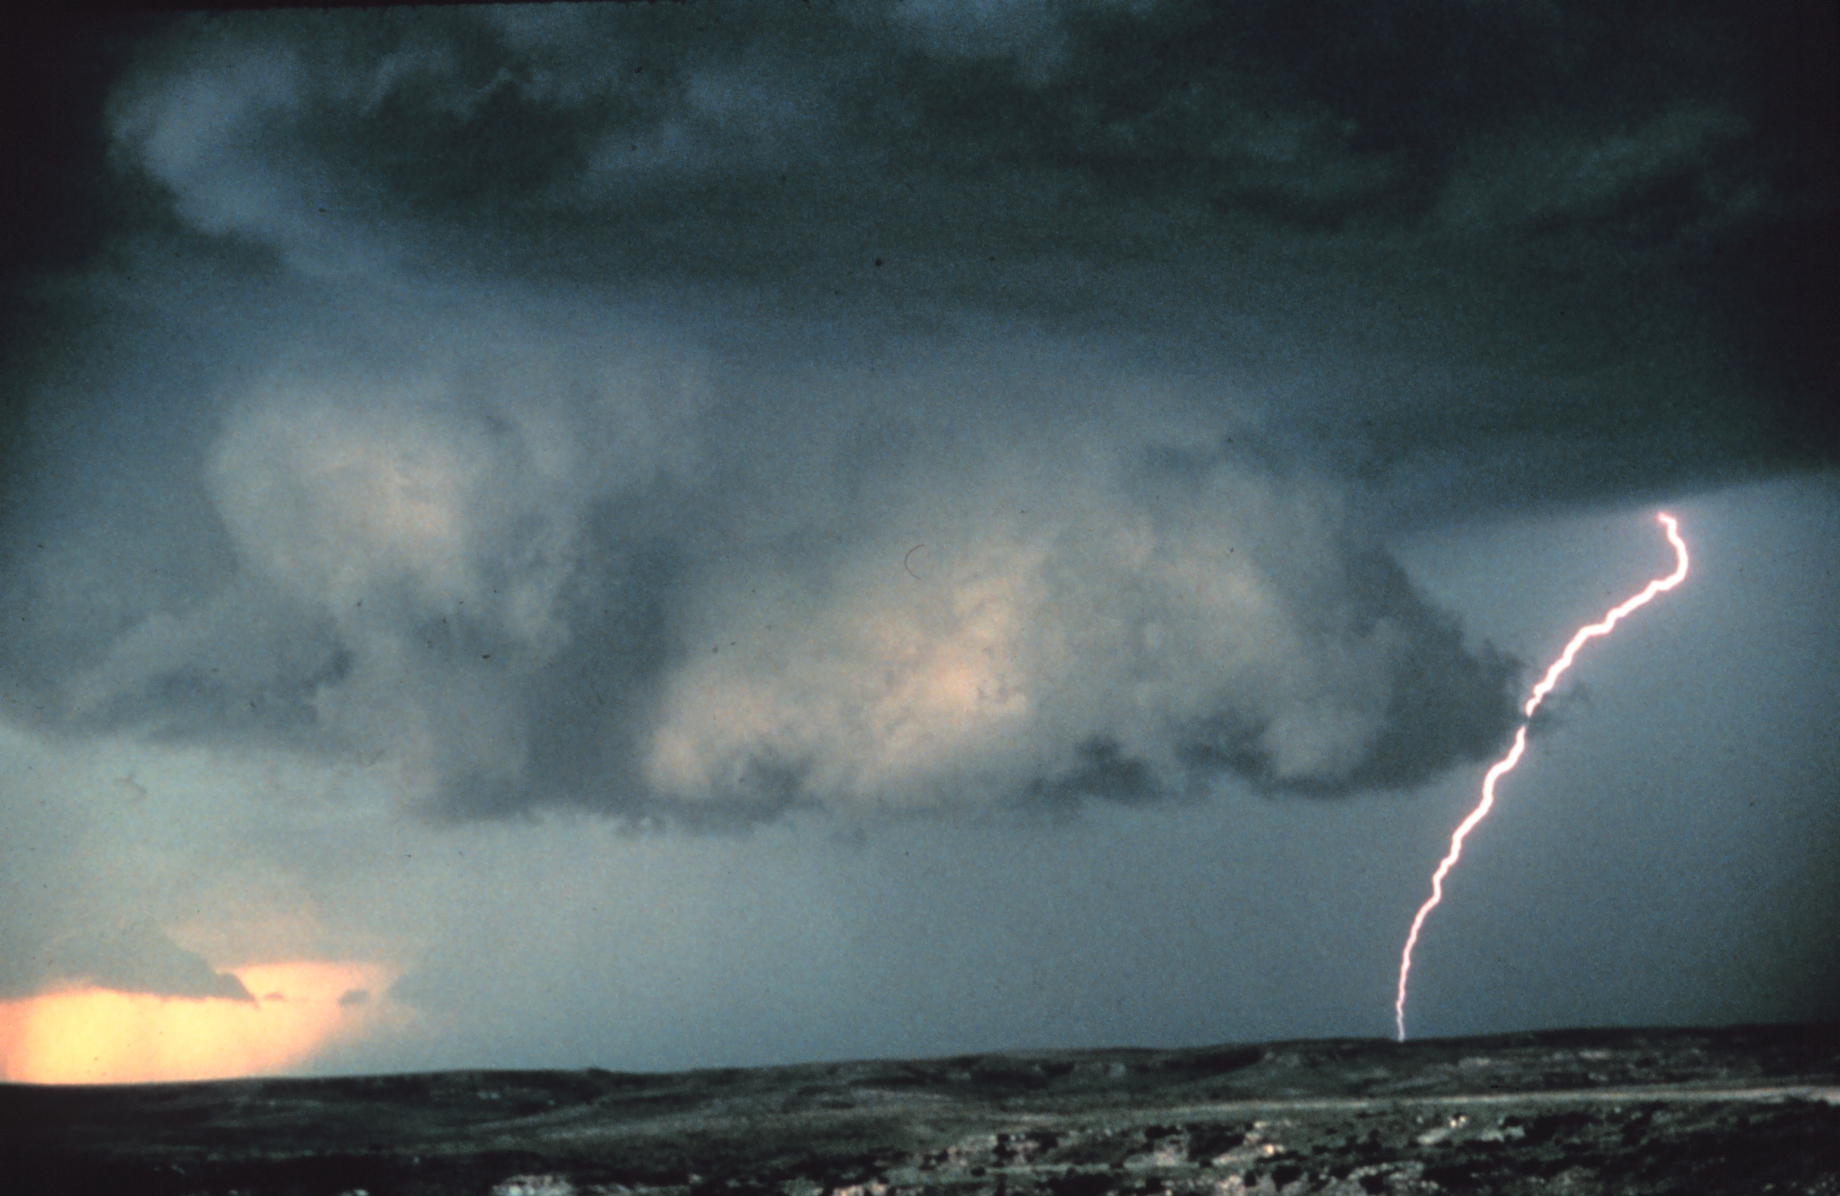 https://upload.wikimedia.org/wikipedia/commons/7/78/Wall_cloud_with_lightning_-_NOAA.jpg